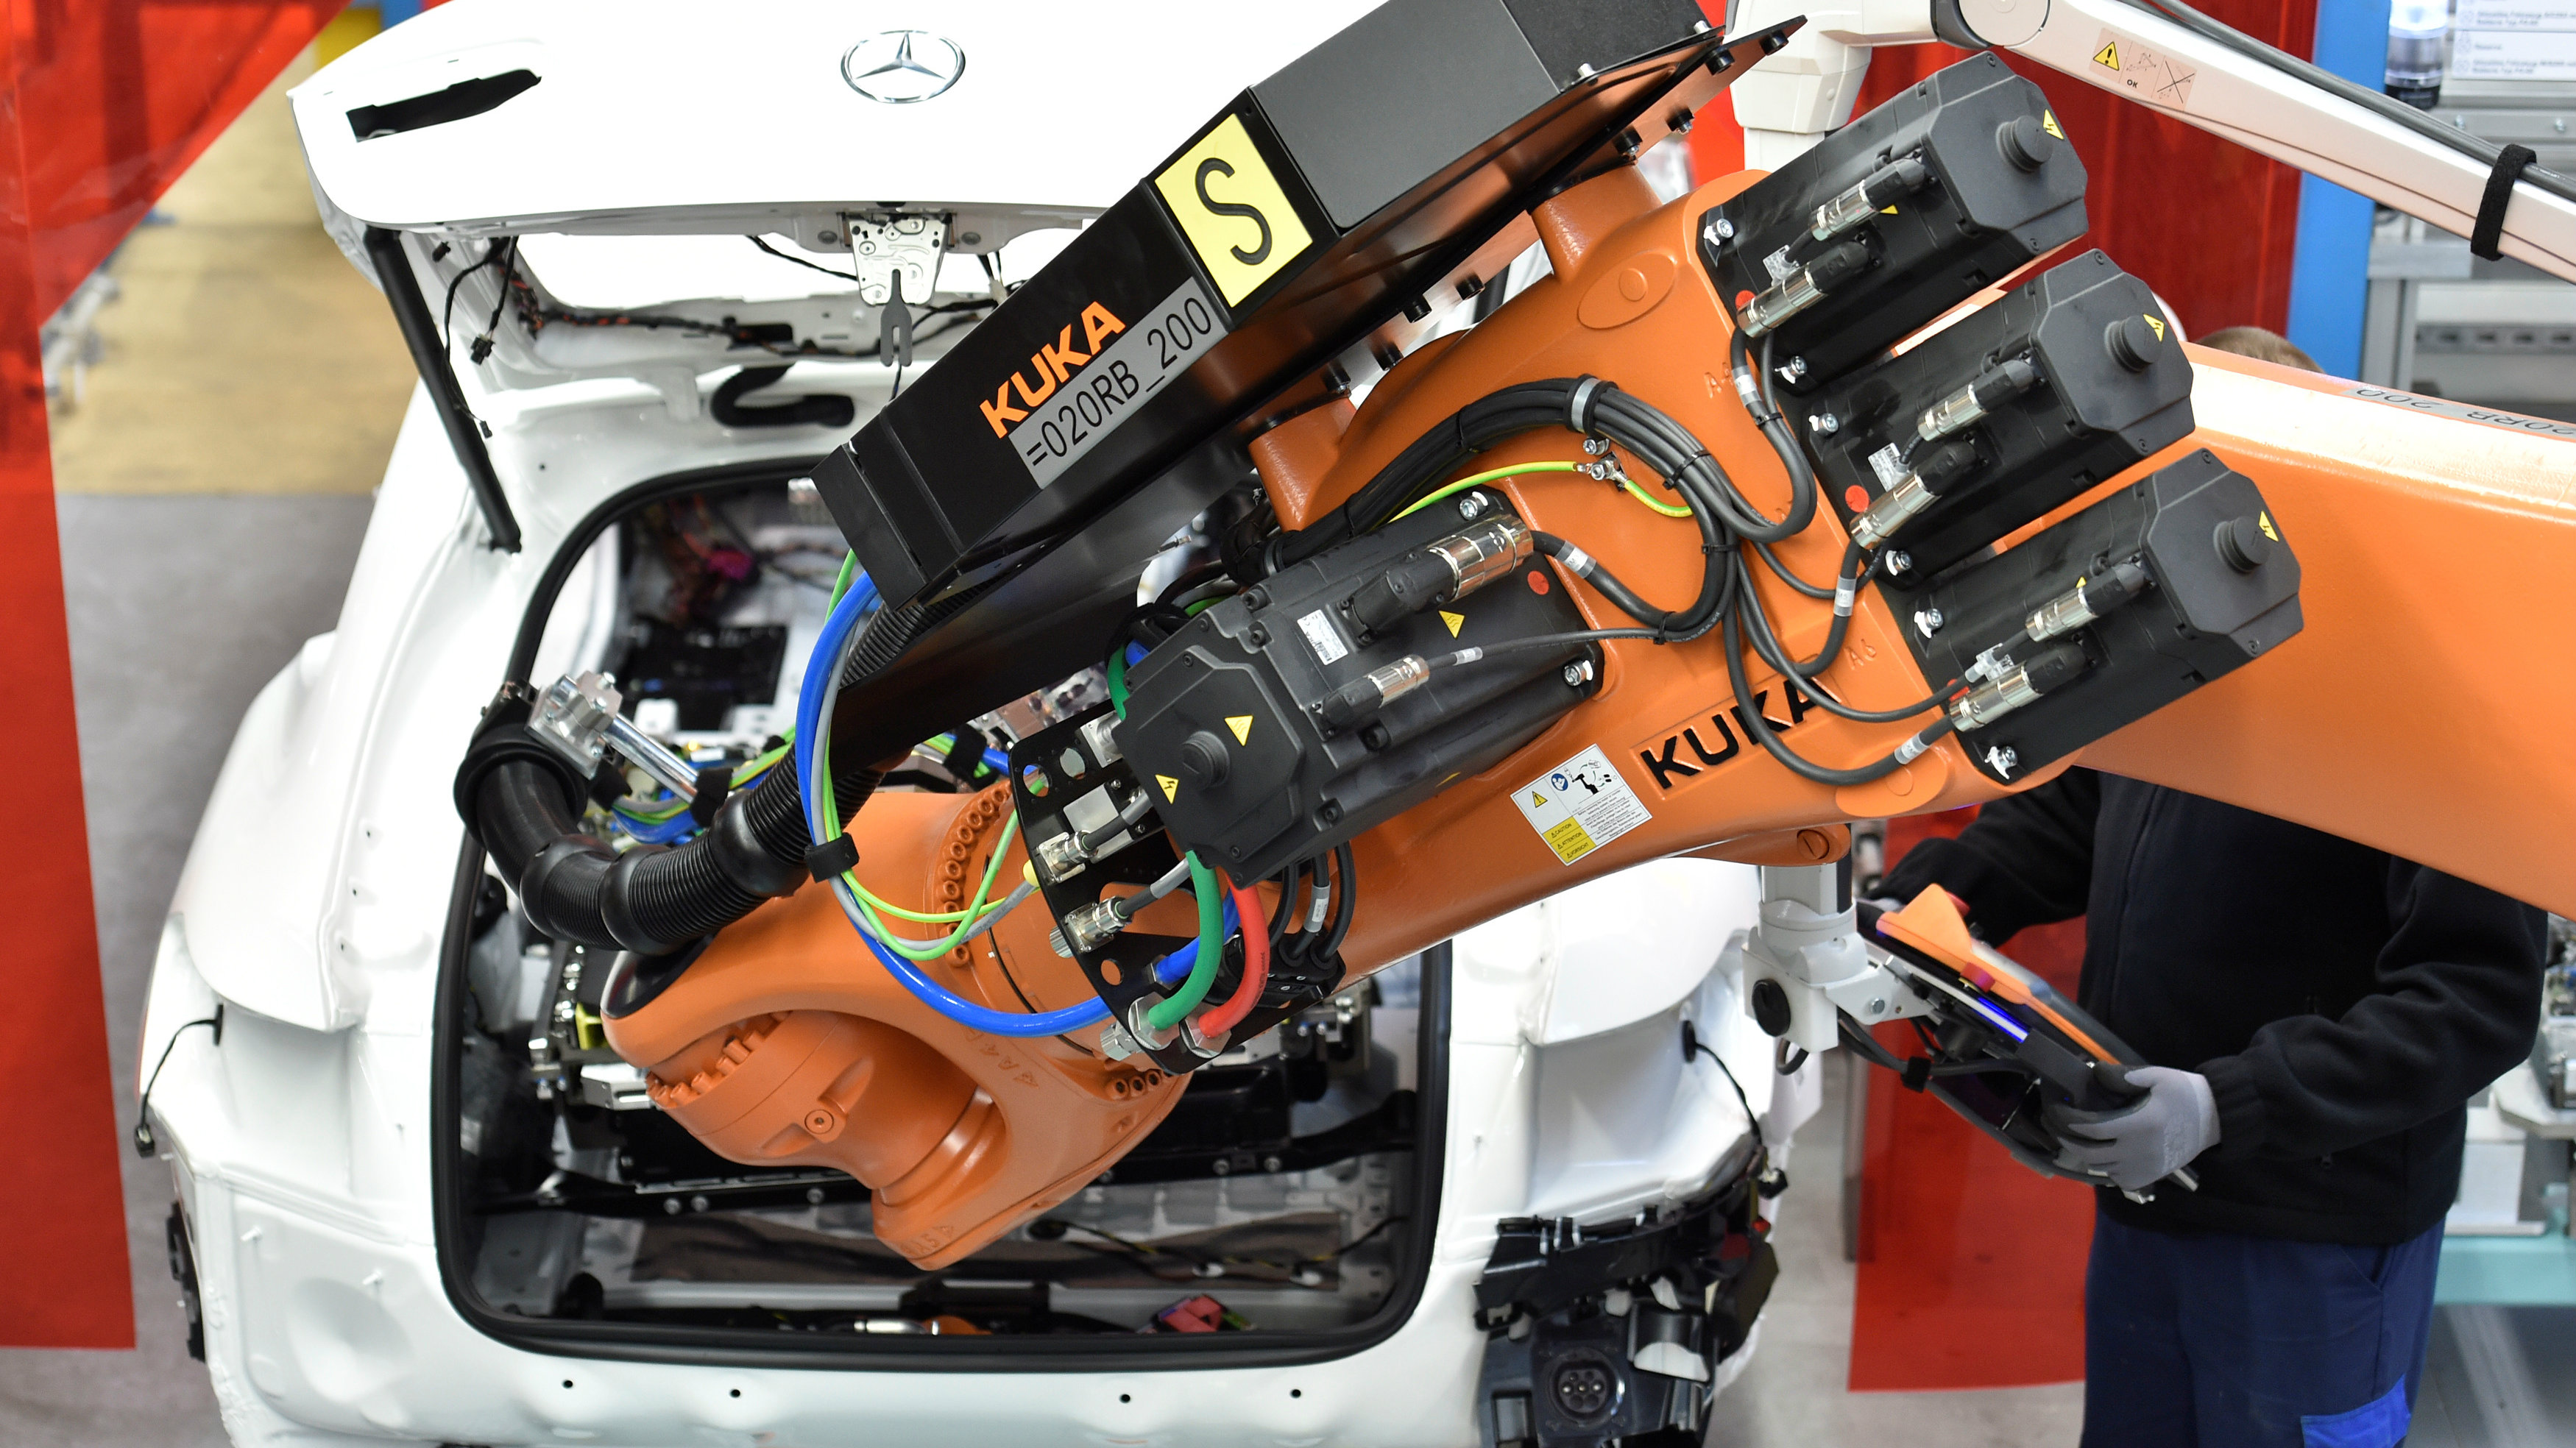 A robot installs a battery in a Mercedes-Benz hybrid car in a production line at the plant of German carmaker Mercedes-Benz in Bremen, Germany January 24, 2017. REUTERS/Fabian Bimmer